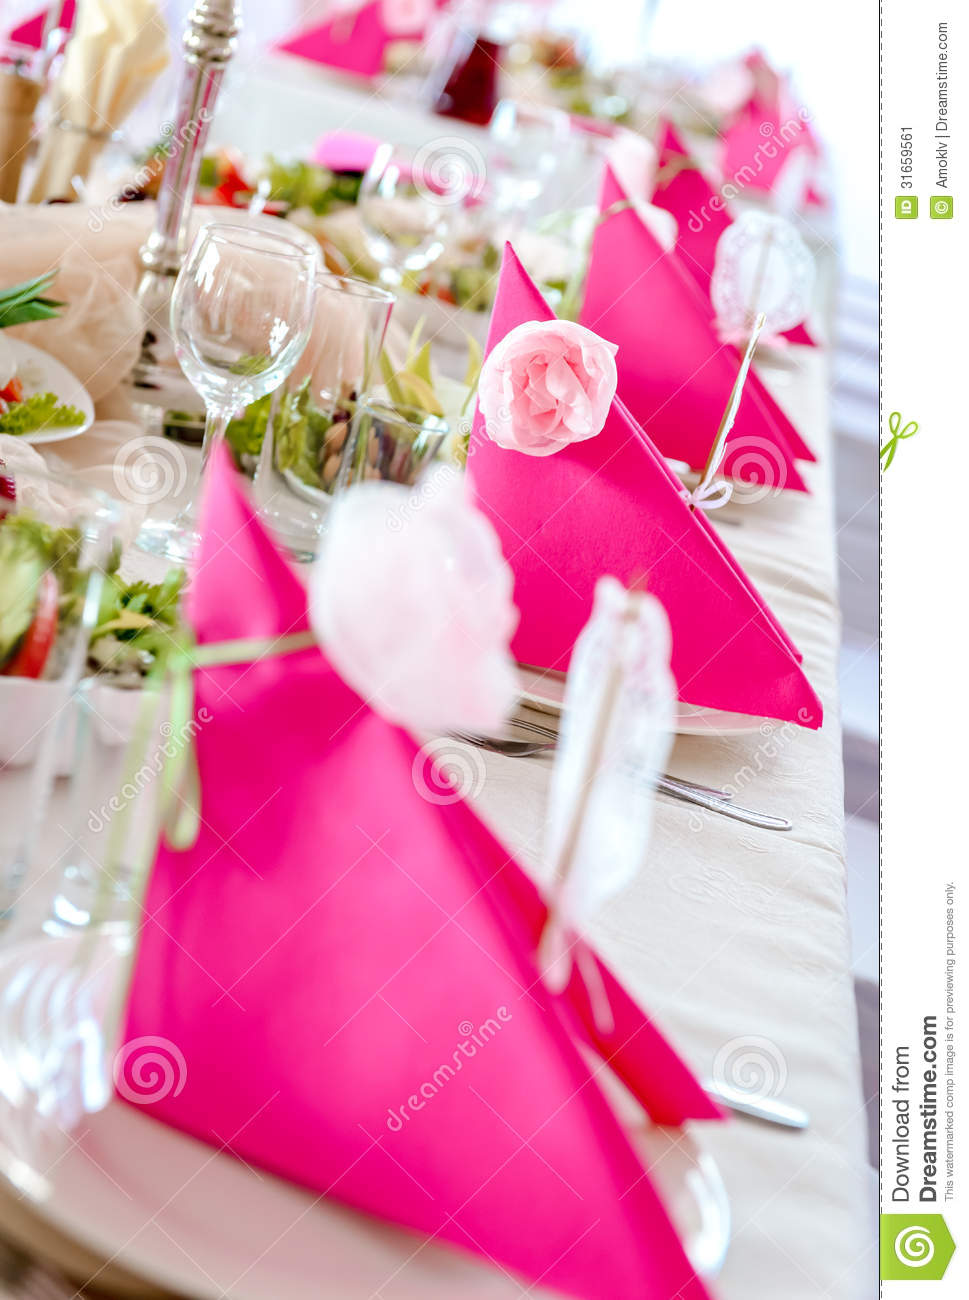 Wedding Table Decorations Stock Image Of Dining